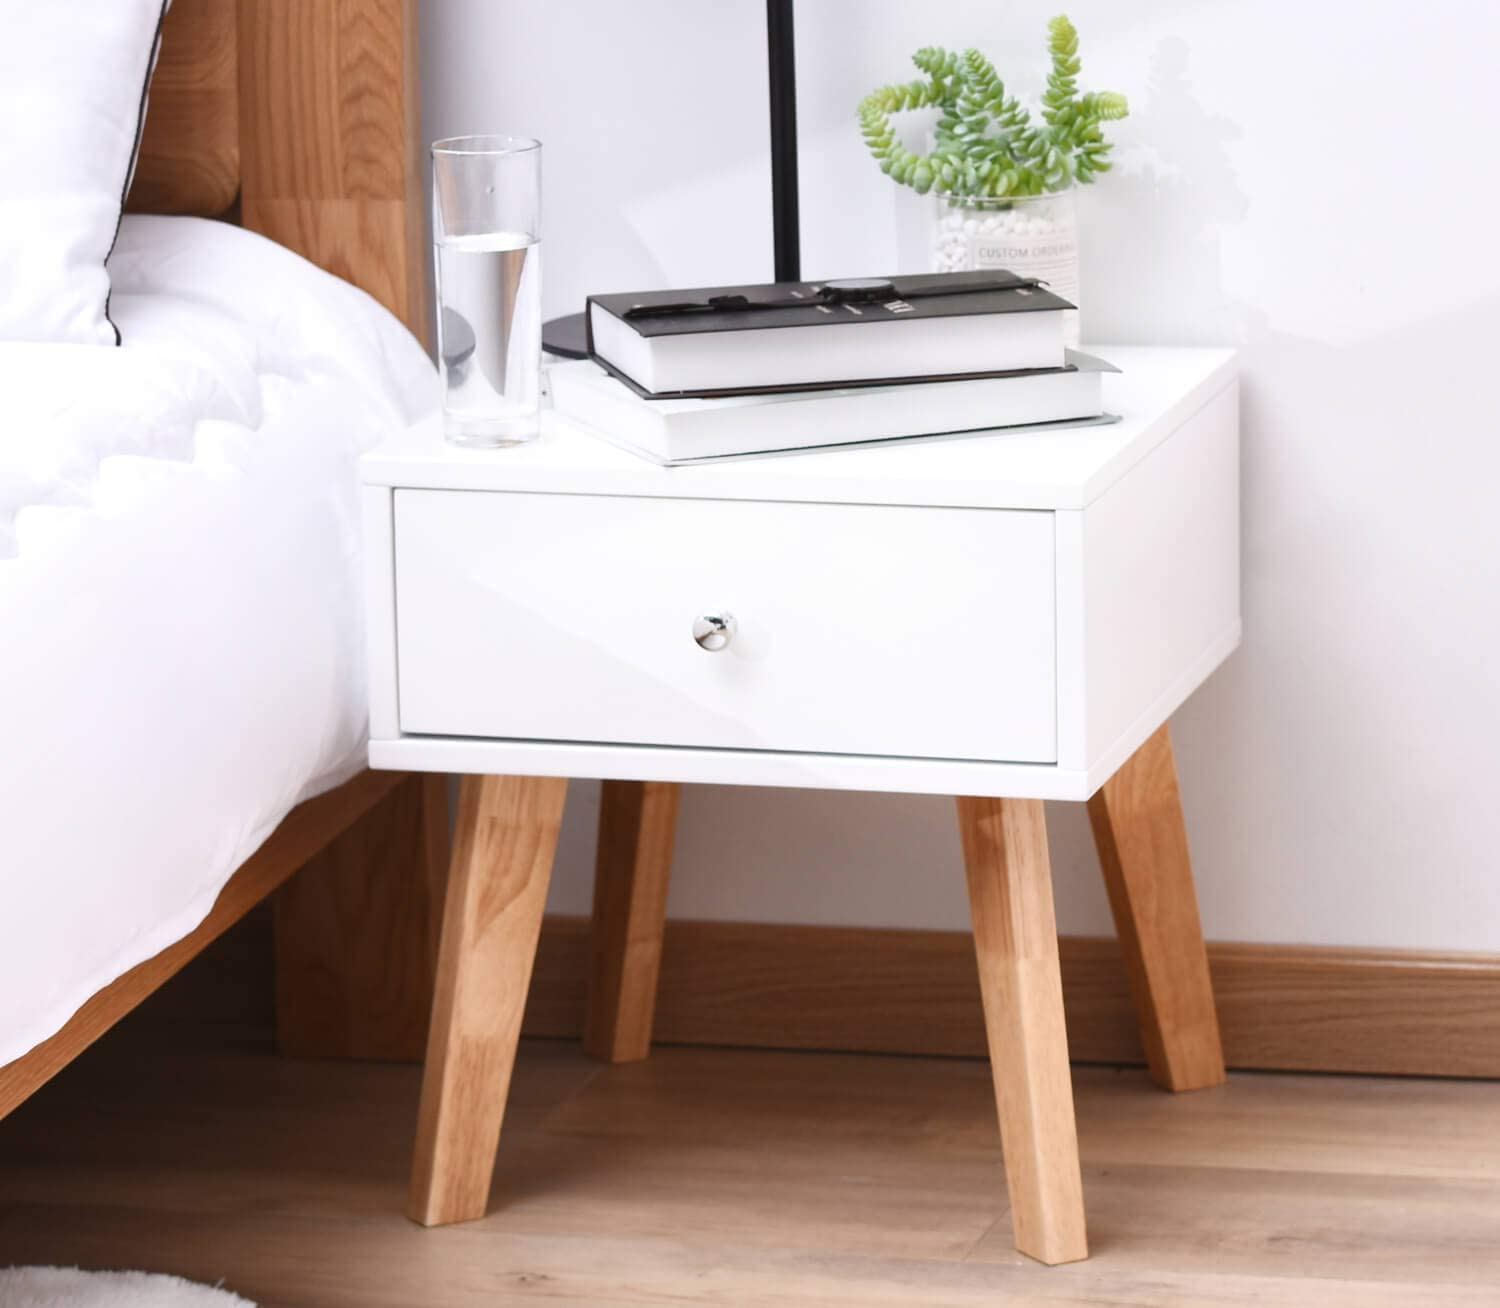 TaoHFE Nightstand in White